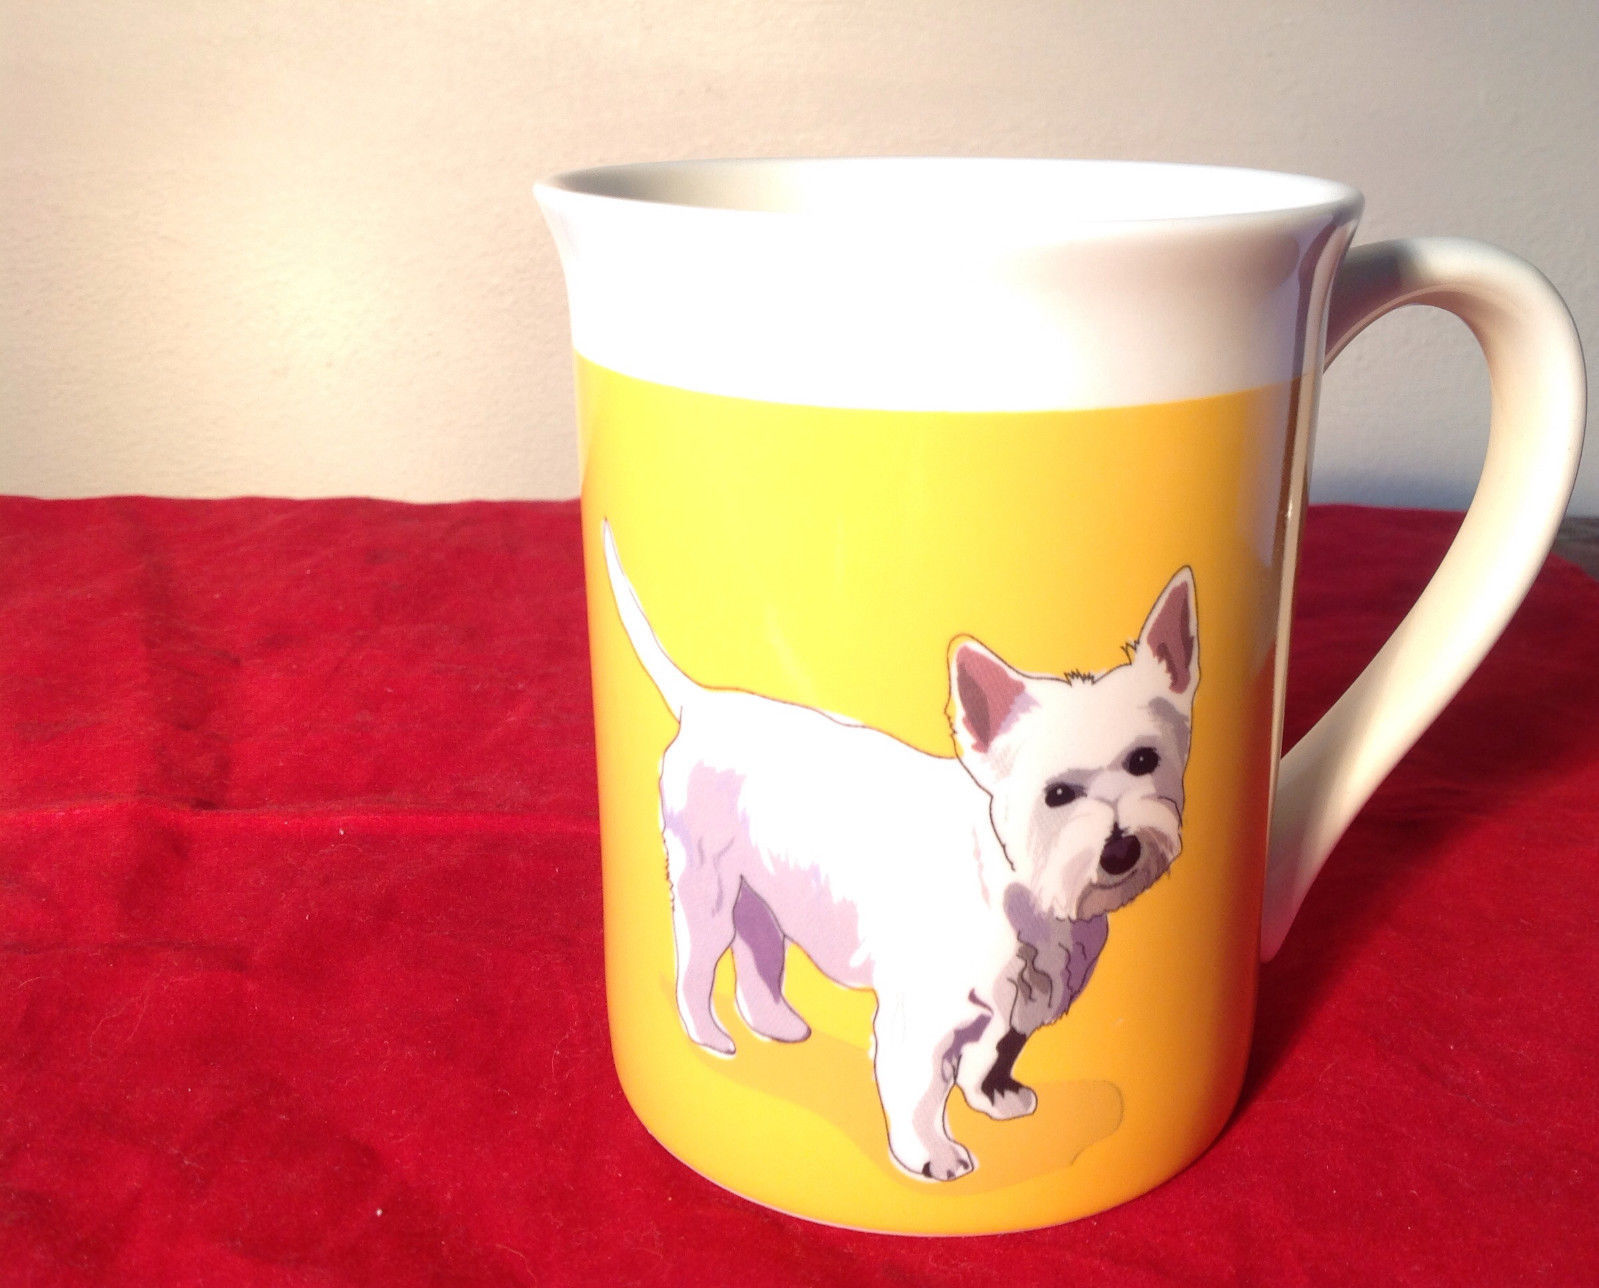 Go Dog Westie Mug by Paper Russells w Original Box 16 oz Department 56